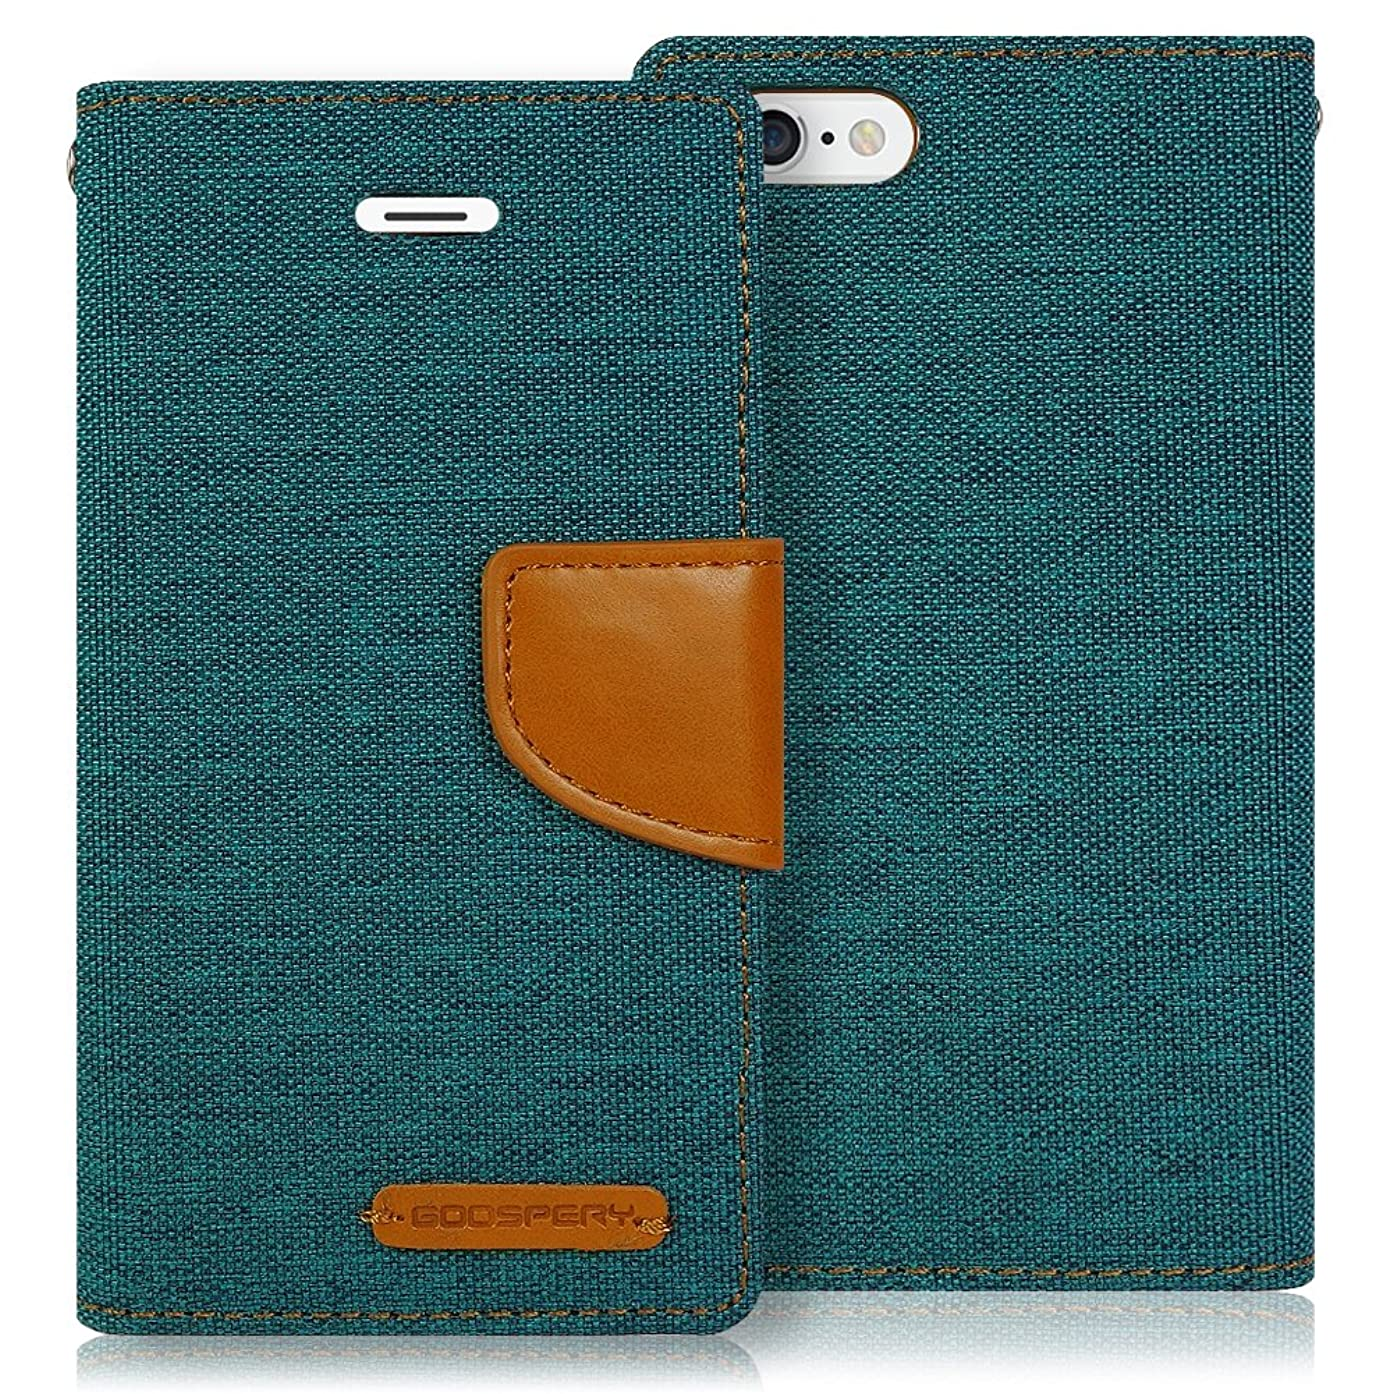 iPhone 6s Plus Case, [Drop Protection] GOOSPERY Canvas Diary [Denim Material] Wallet Case [ID Credit Card and Cash Slots] with Stand Flip Cover for Apple iPhone 6 Plus /6s Plus (Green) IP6P-CAN-GRN